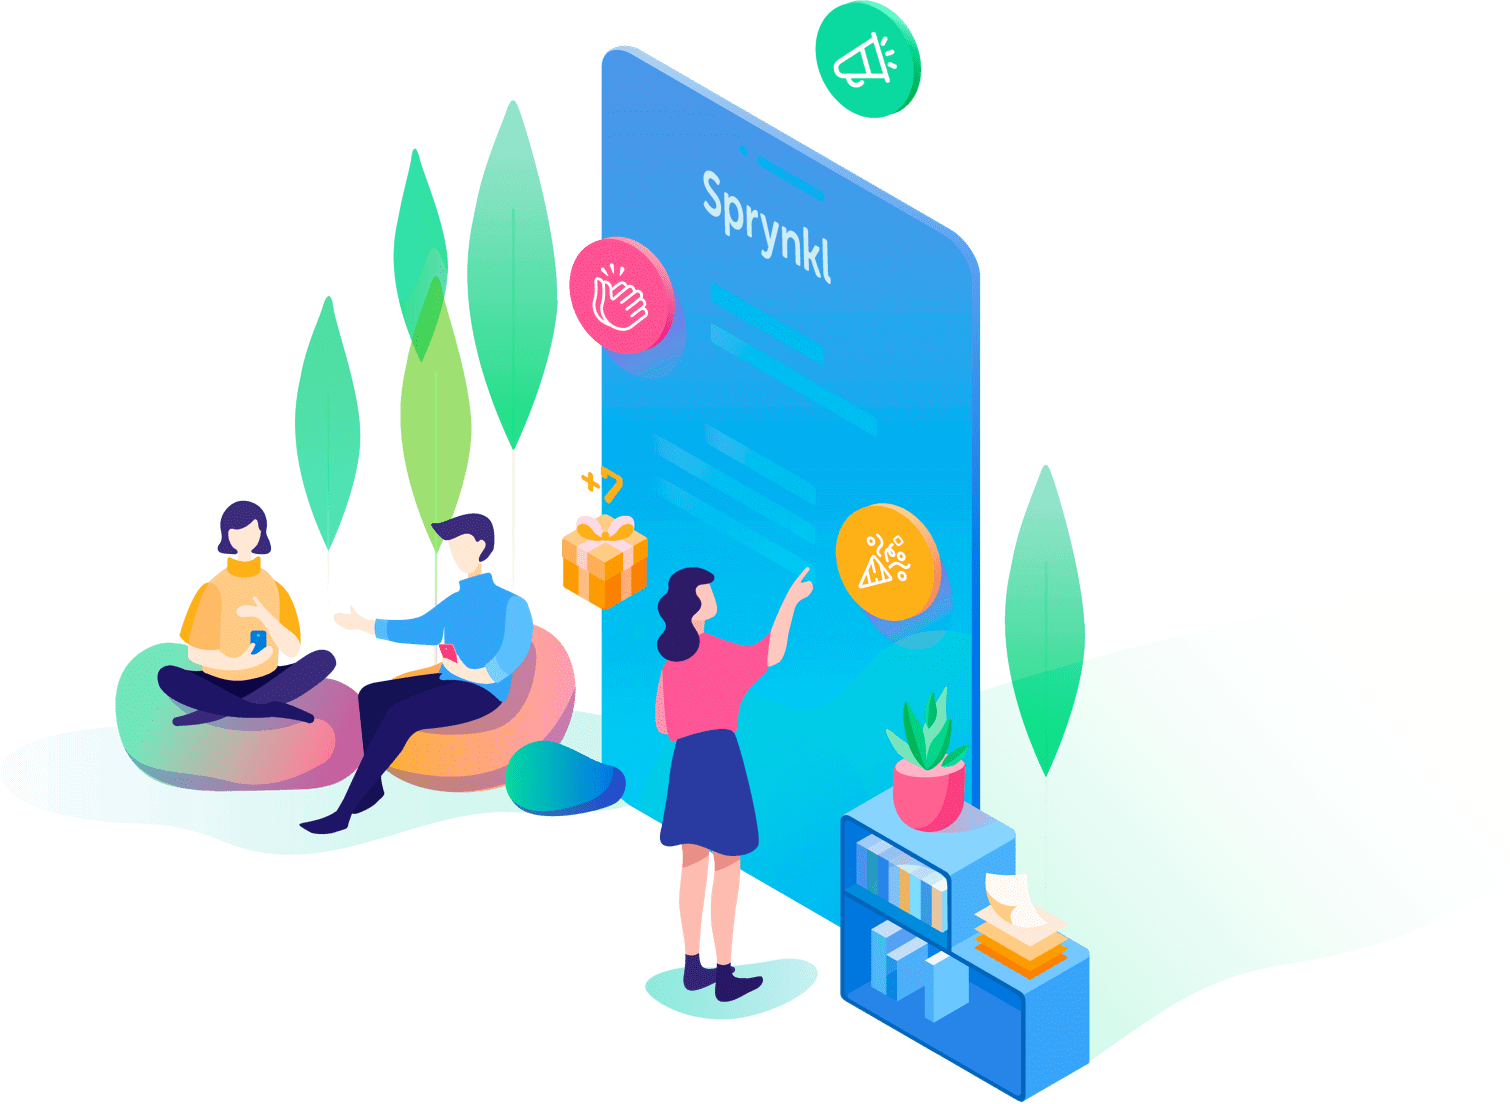 Build a truly social enterprise with Sprynkl